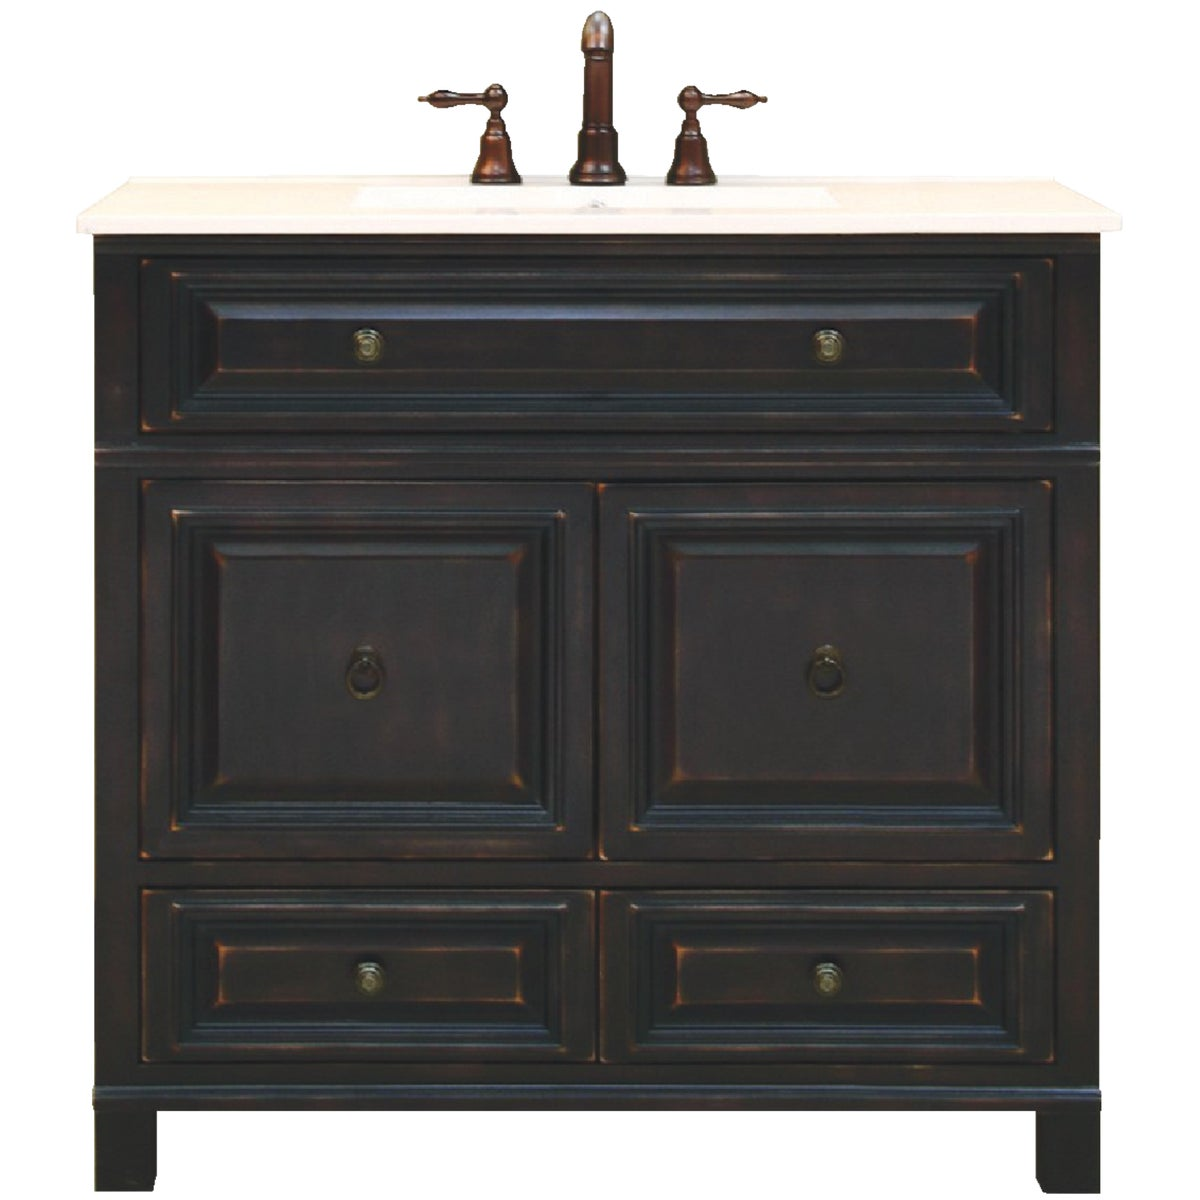 BH 36X21 VANITY - BH3621D by Sunnywood Products